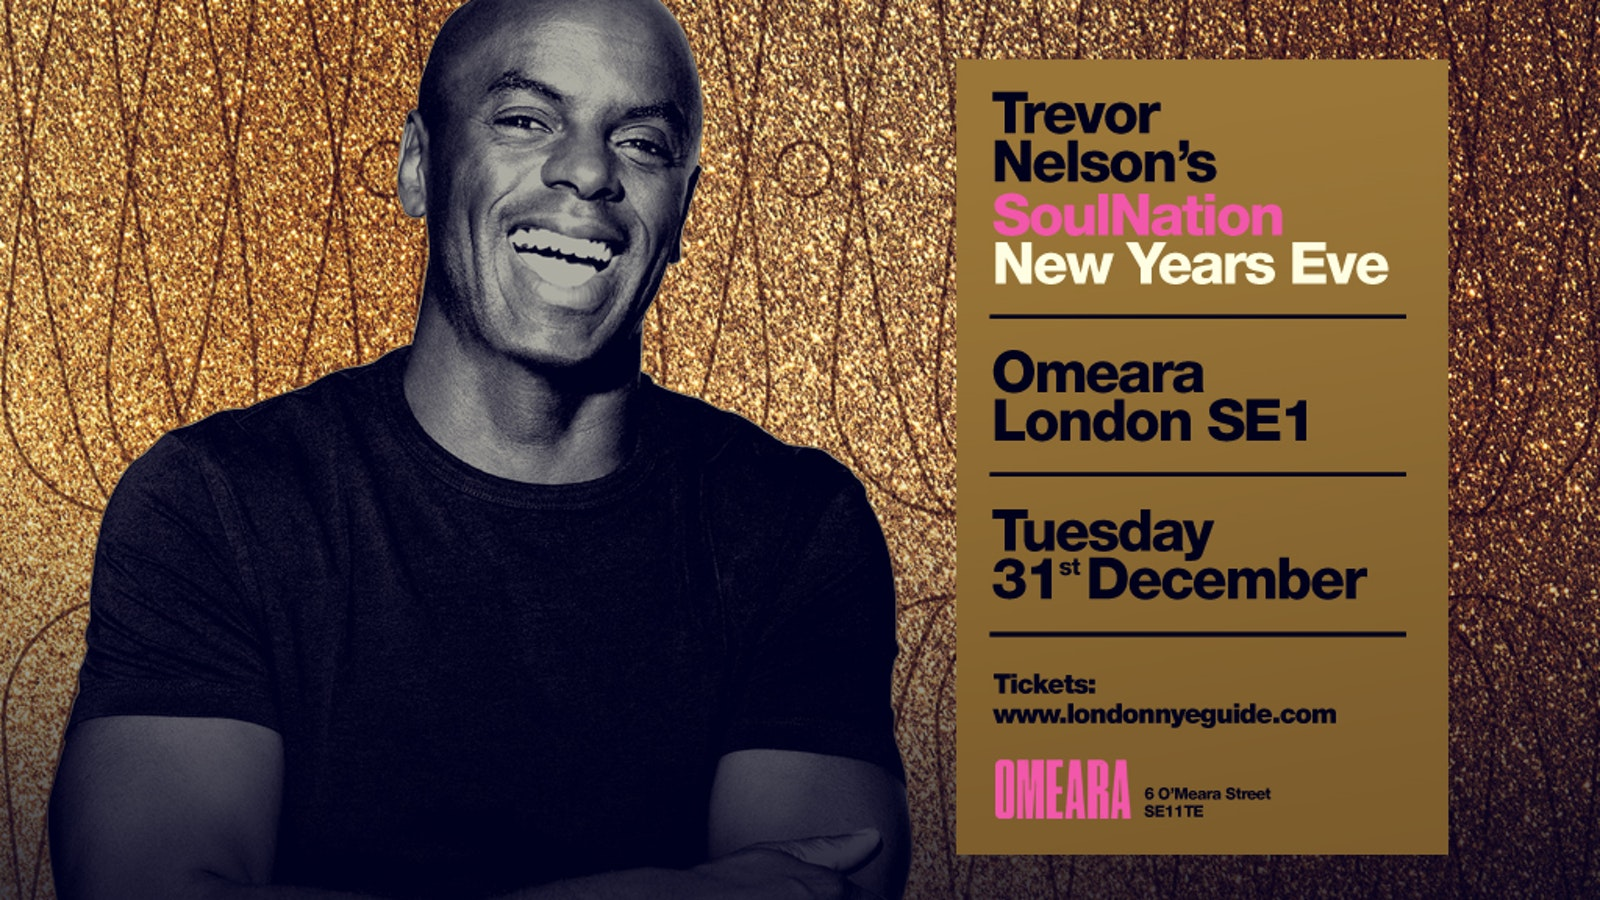 Trevor Nelson's New Years Eve #Classics – OMEARA & Flat Iron Square